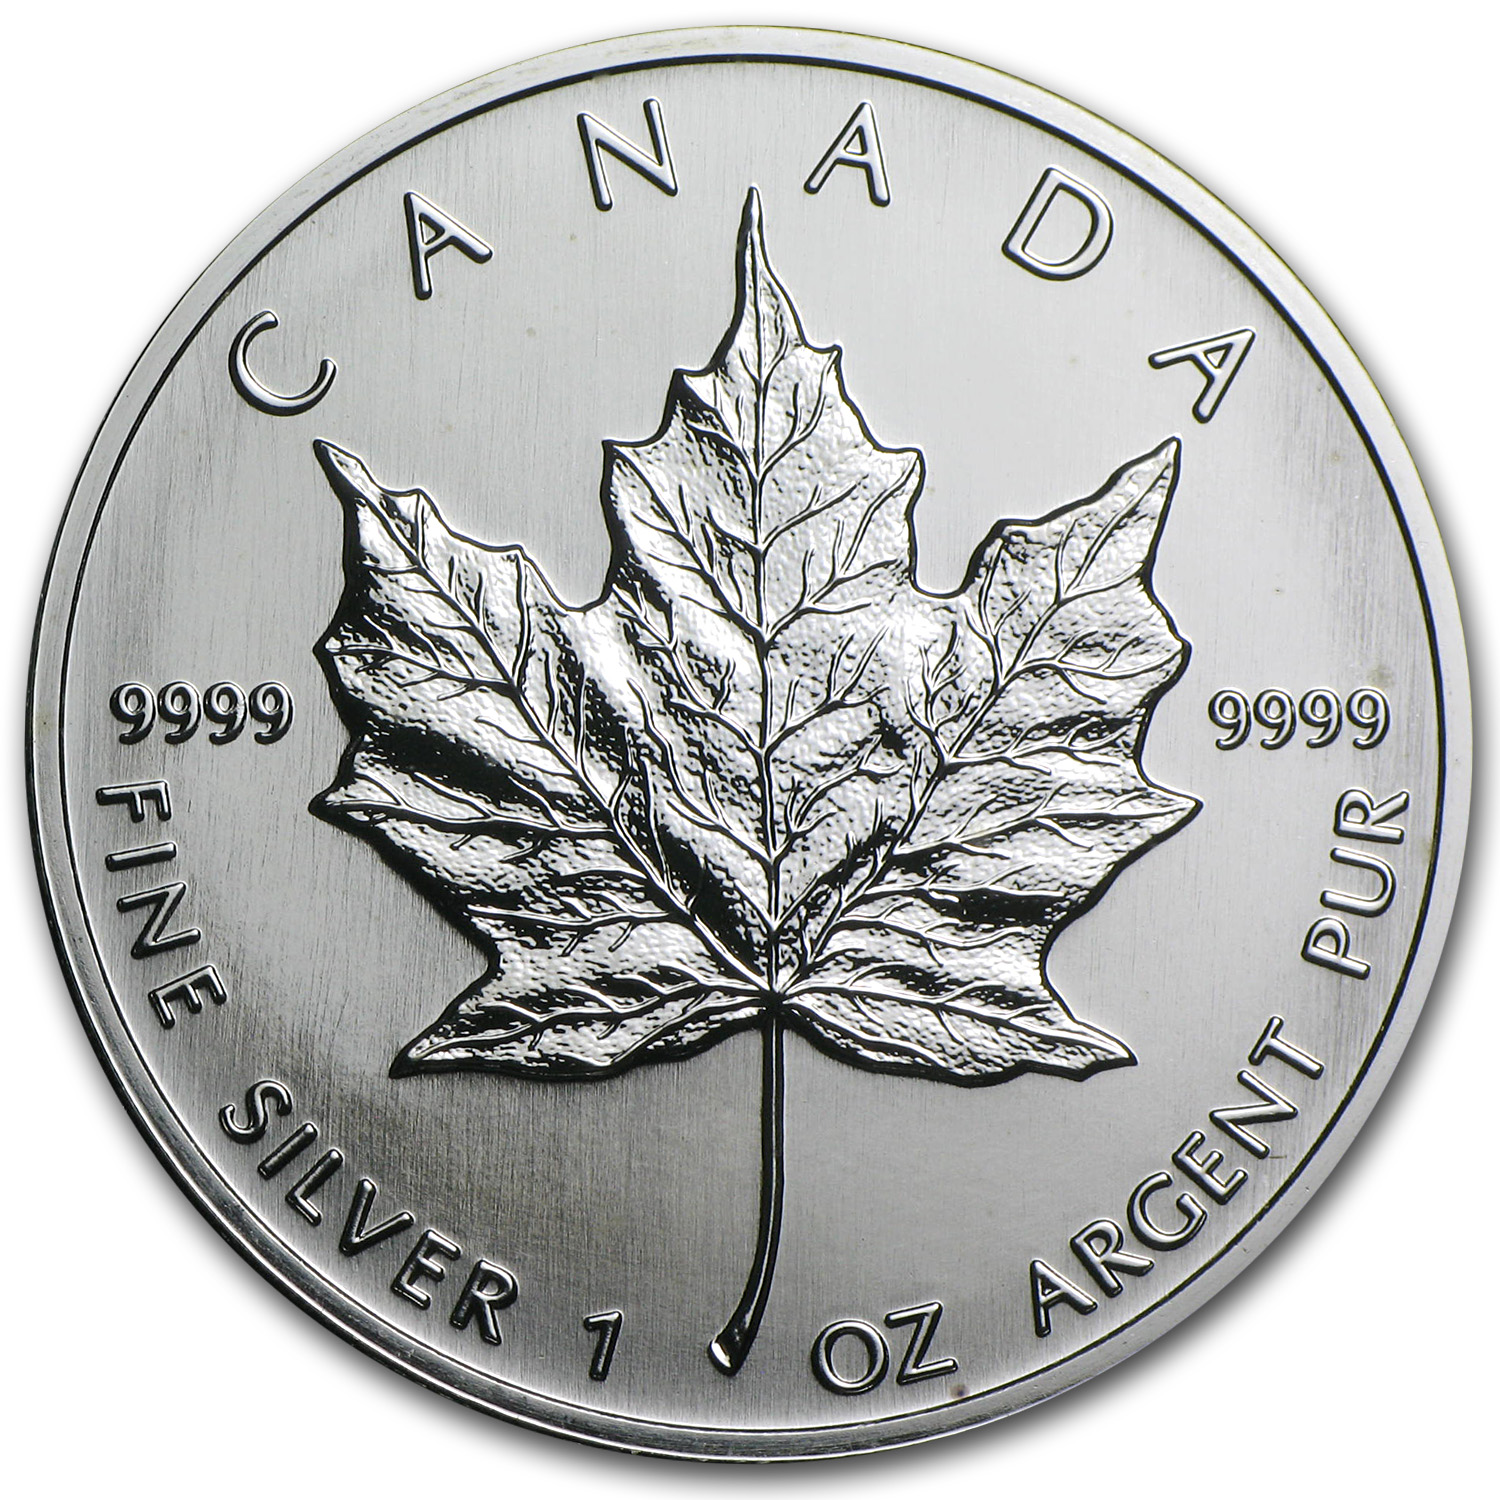 1991 Canada 1 oz Silver Maple Leaf BU